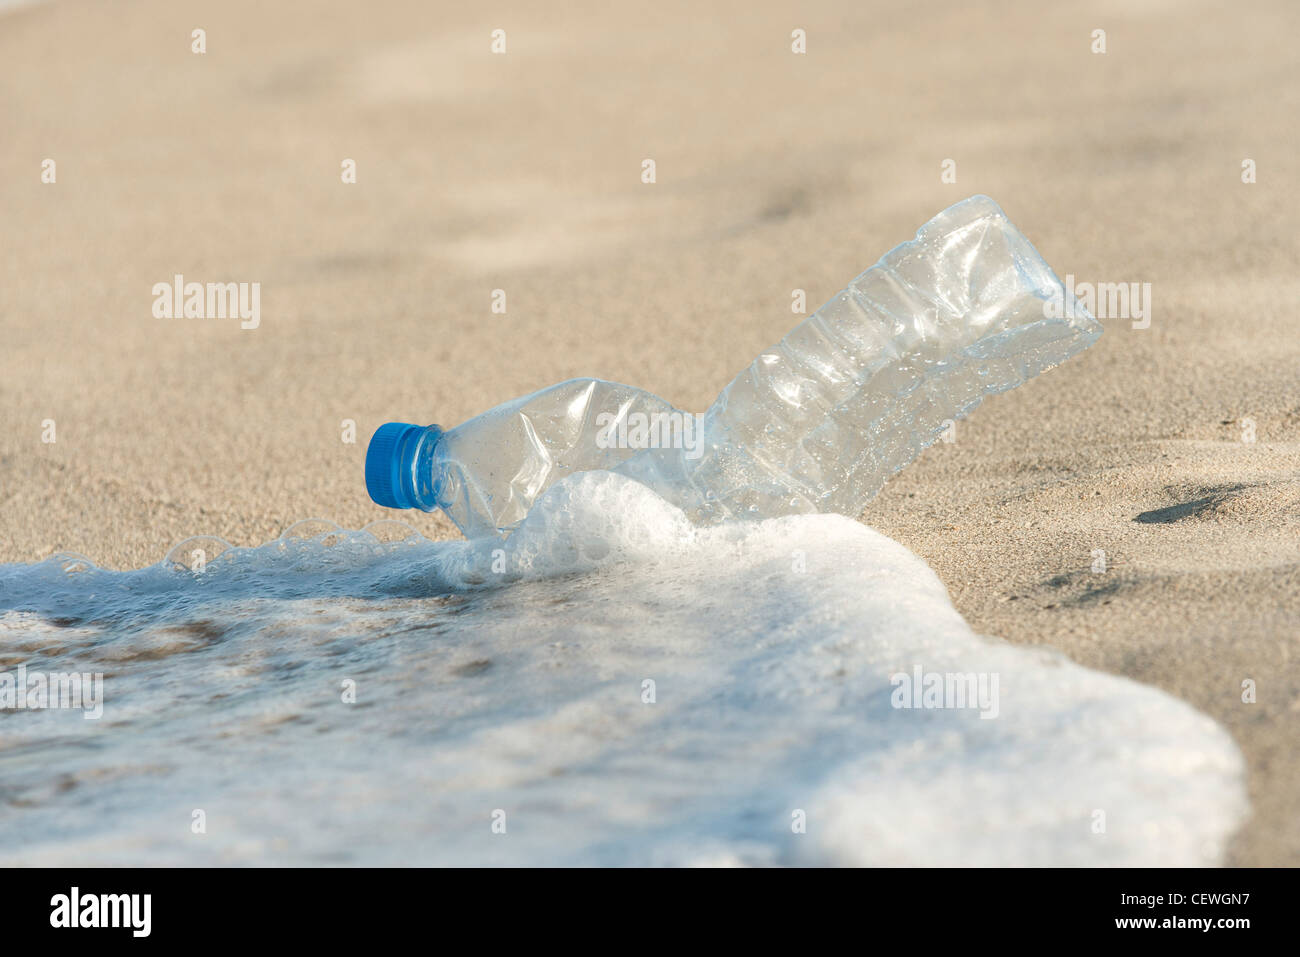 Abandonded plastic bottle on beach - Stock Image